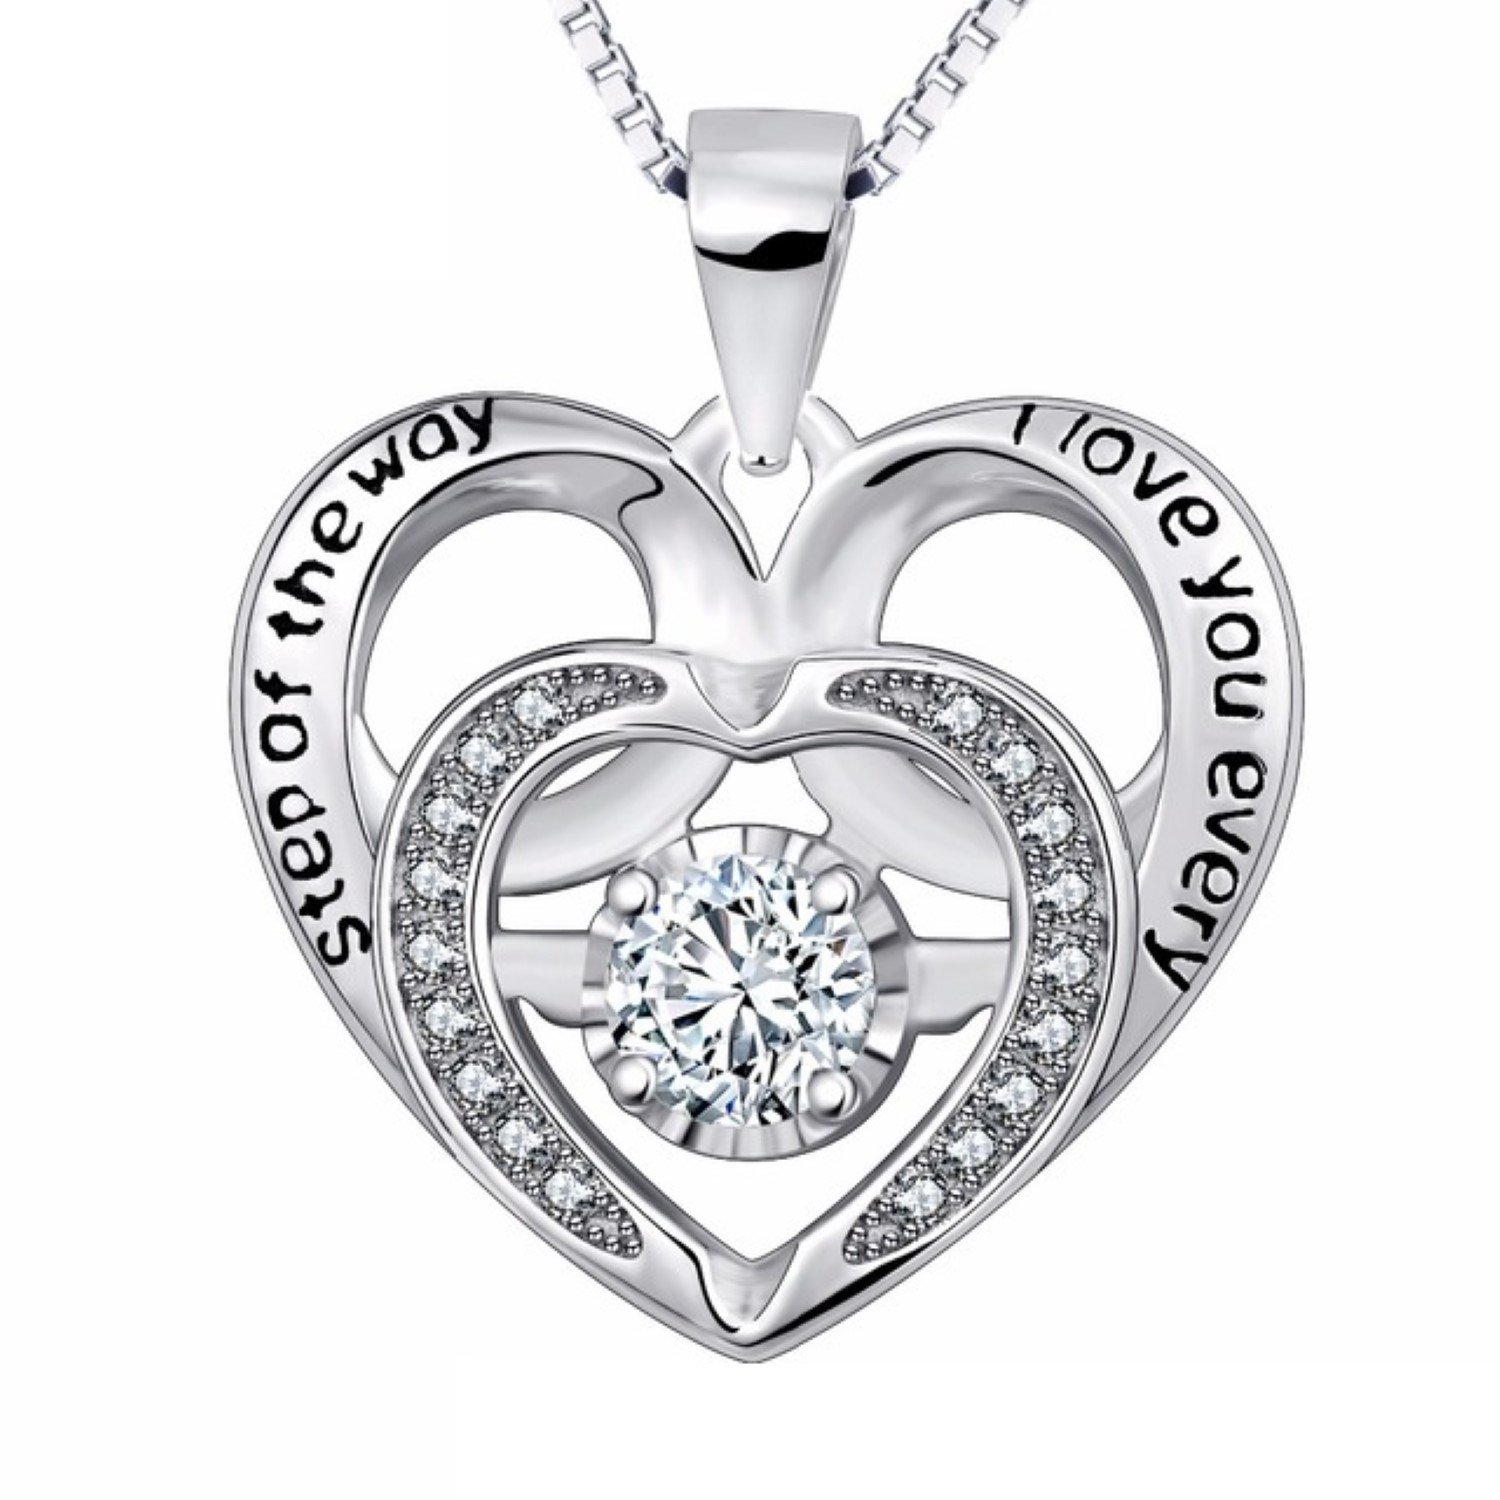 MMC Silver Necklace Crystal Heart to Heart Forever Love Design Jewelry